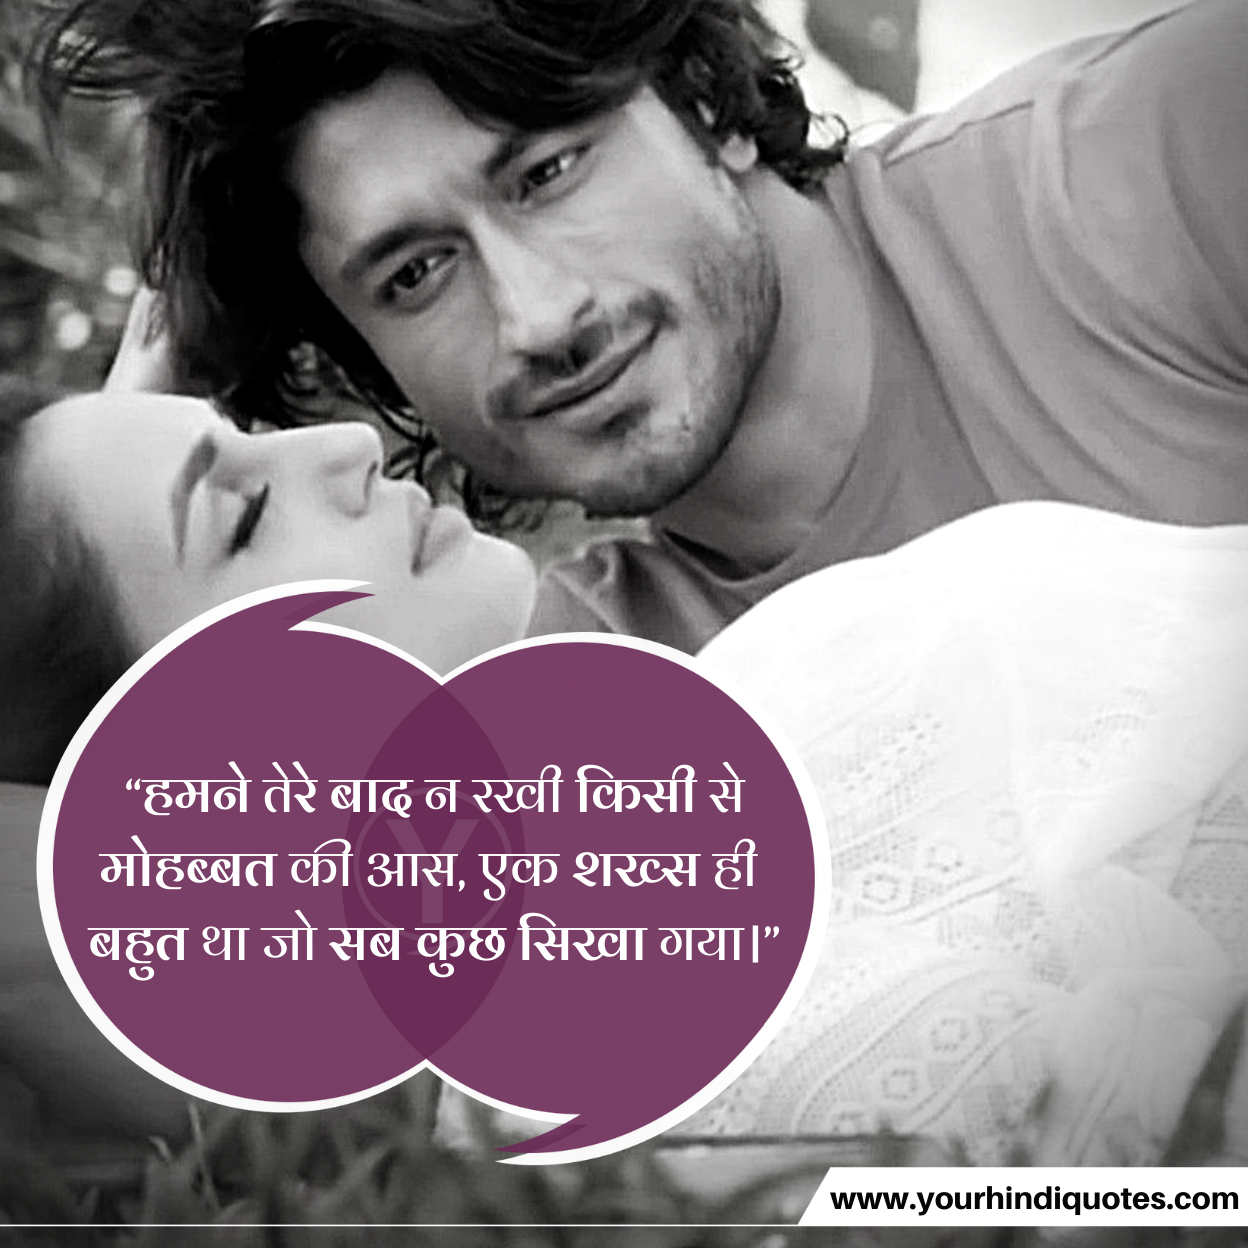 Hindi Sad Shayari Photos